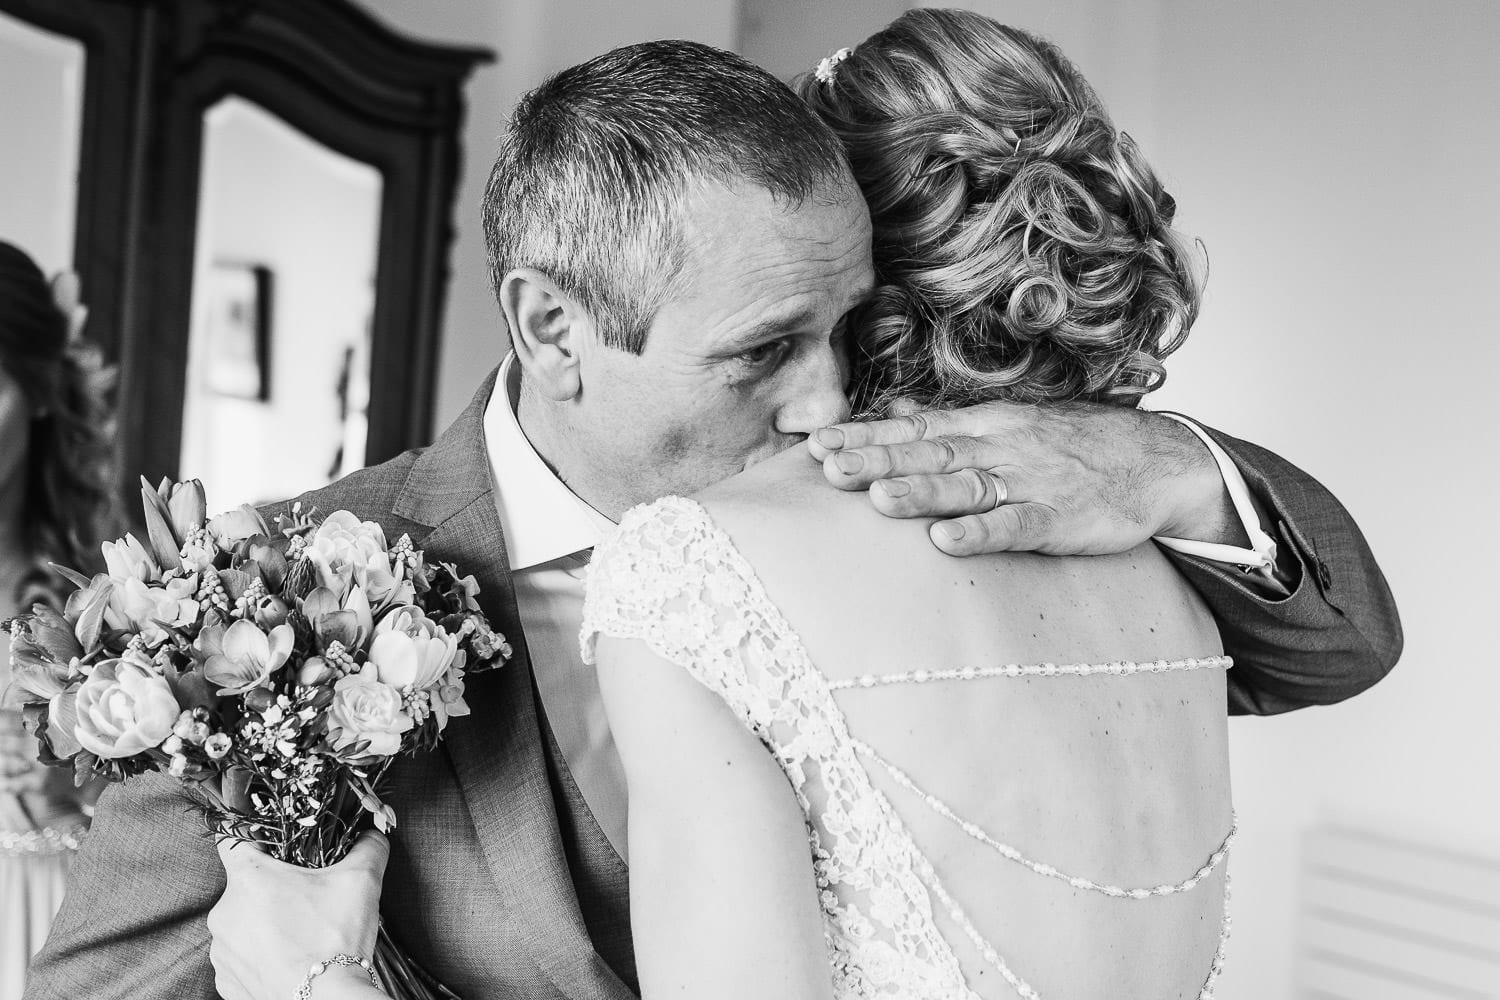 The father of the bride cries as he hugs his daughter